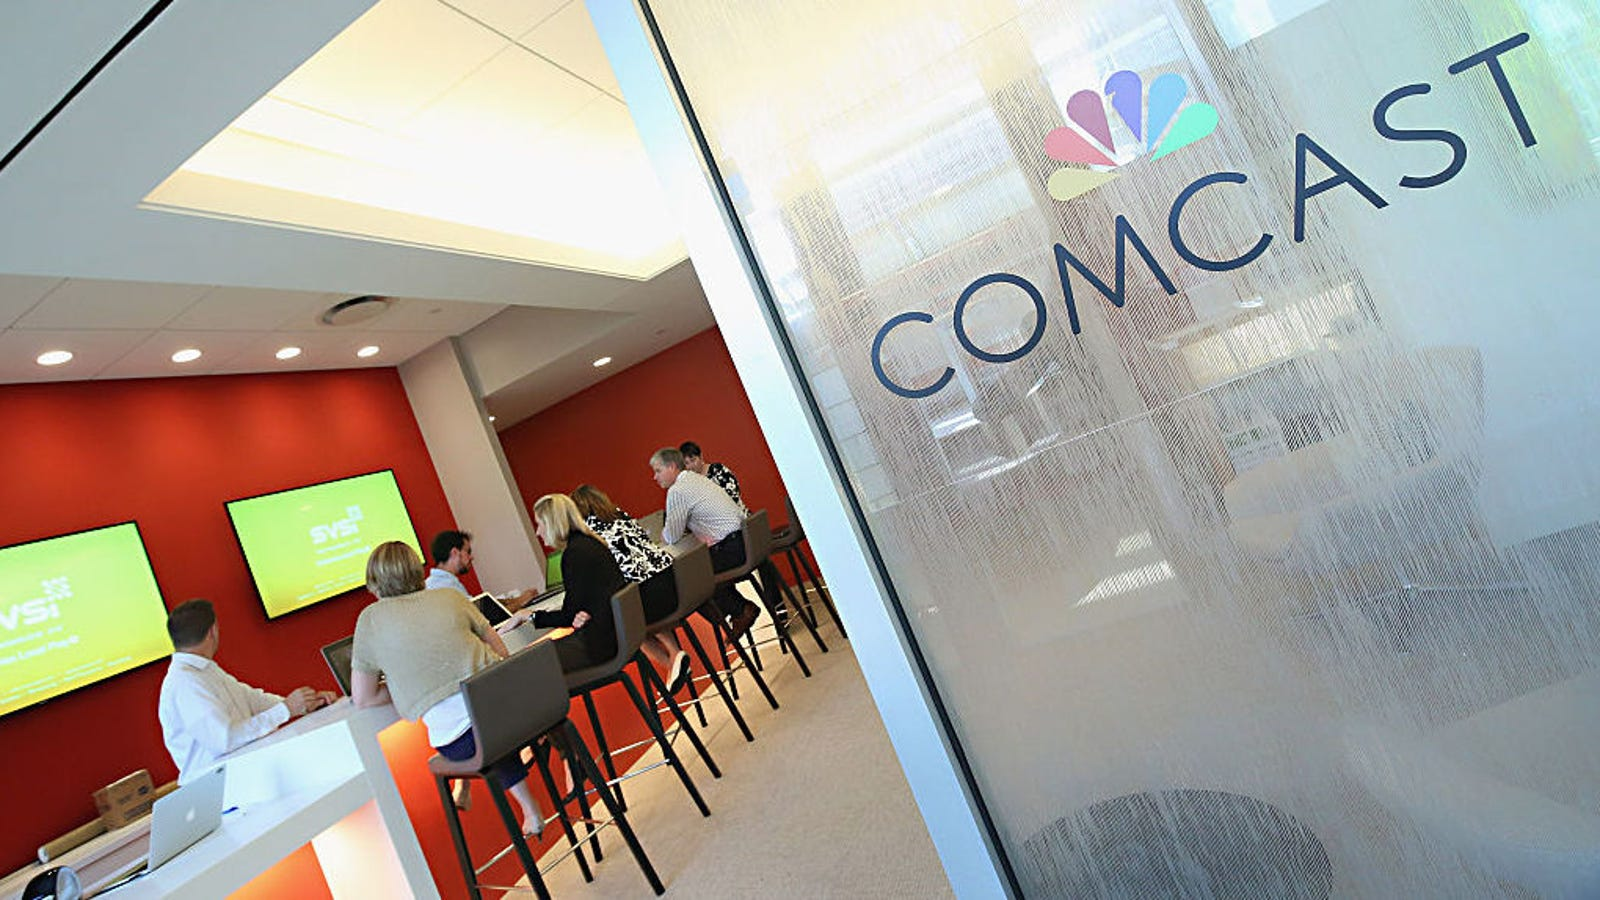 Comcast Offers 65 Billion In Cash To Buy Fox And Screw Disney